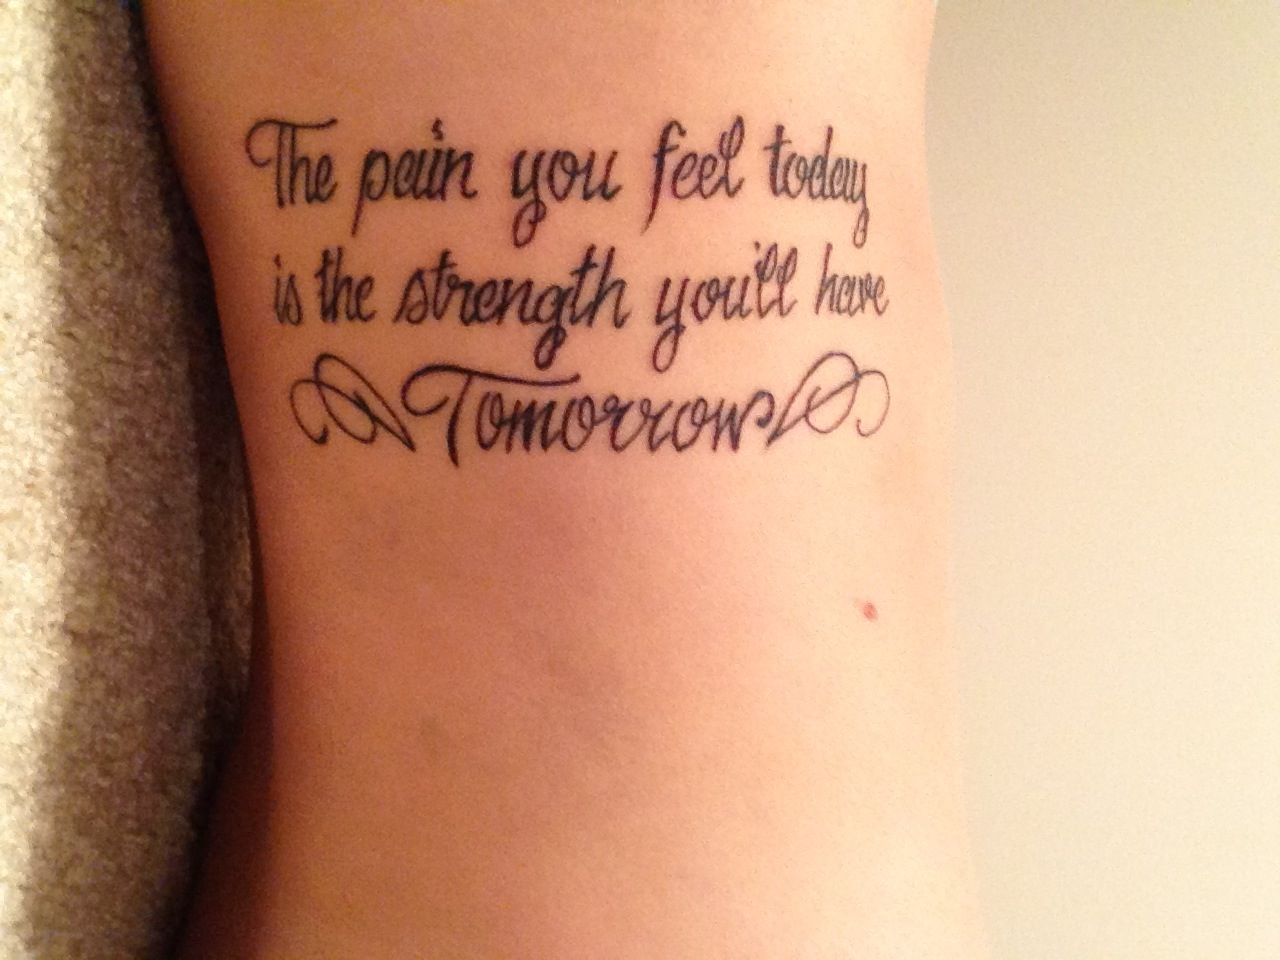 40 meaningful tattoo quotes to get inspired - Strength Tattoo Quotes On Side With Wings The Pain You Feel Taday Is The Strength You Ll Have Tomorrow Want This On Shoulder